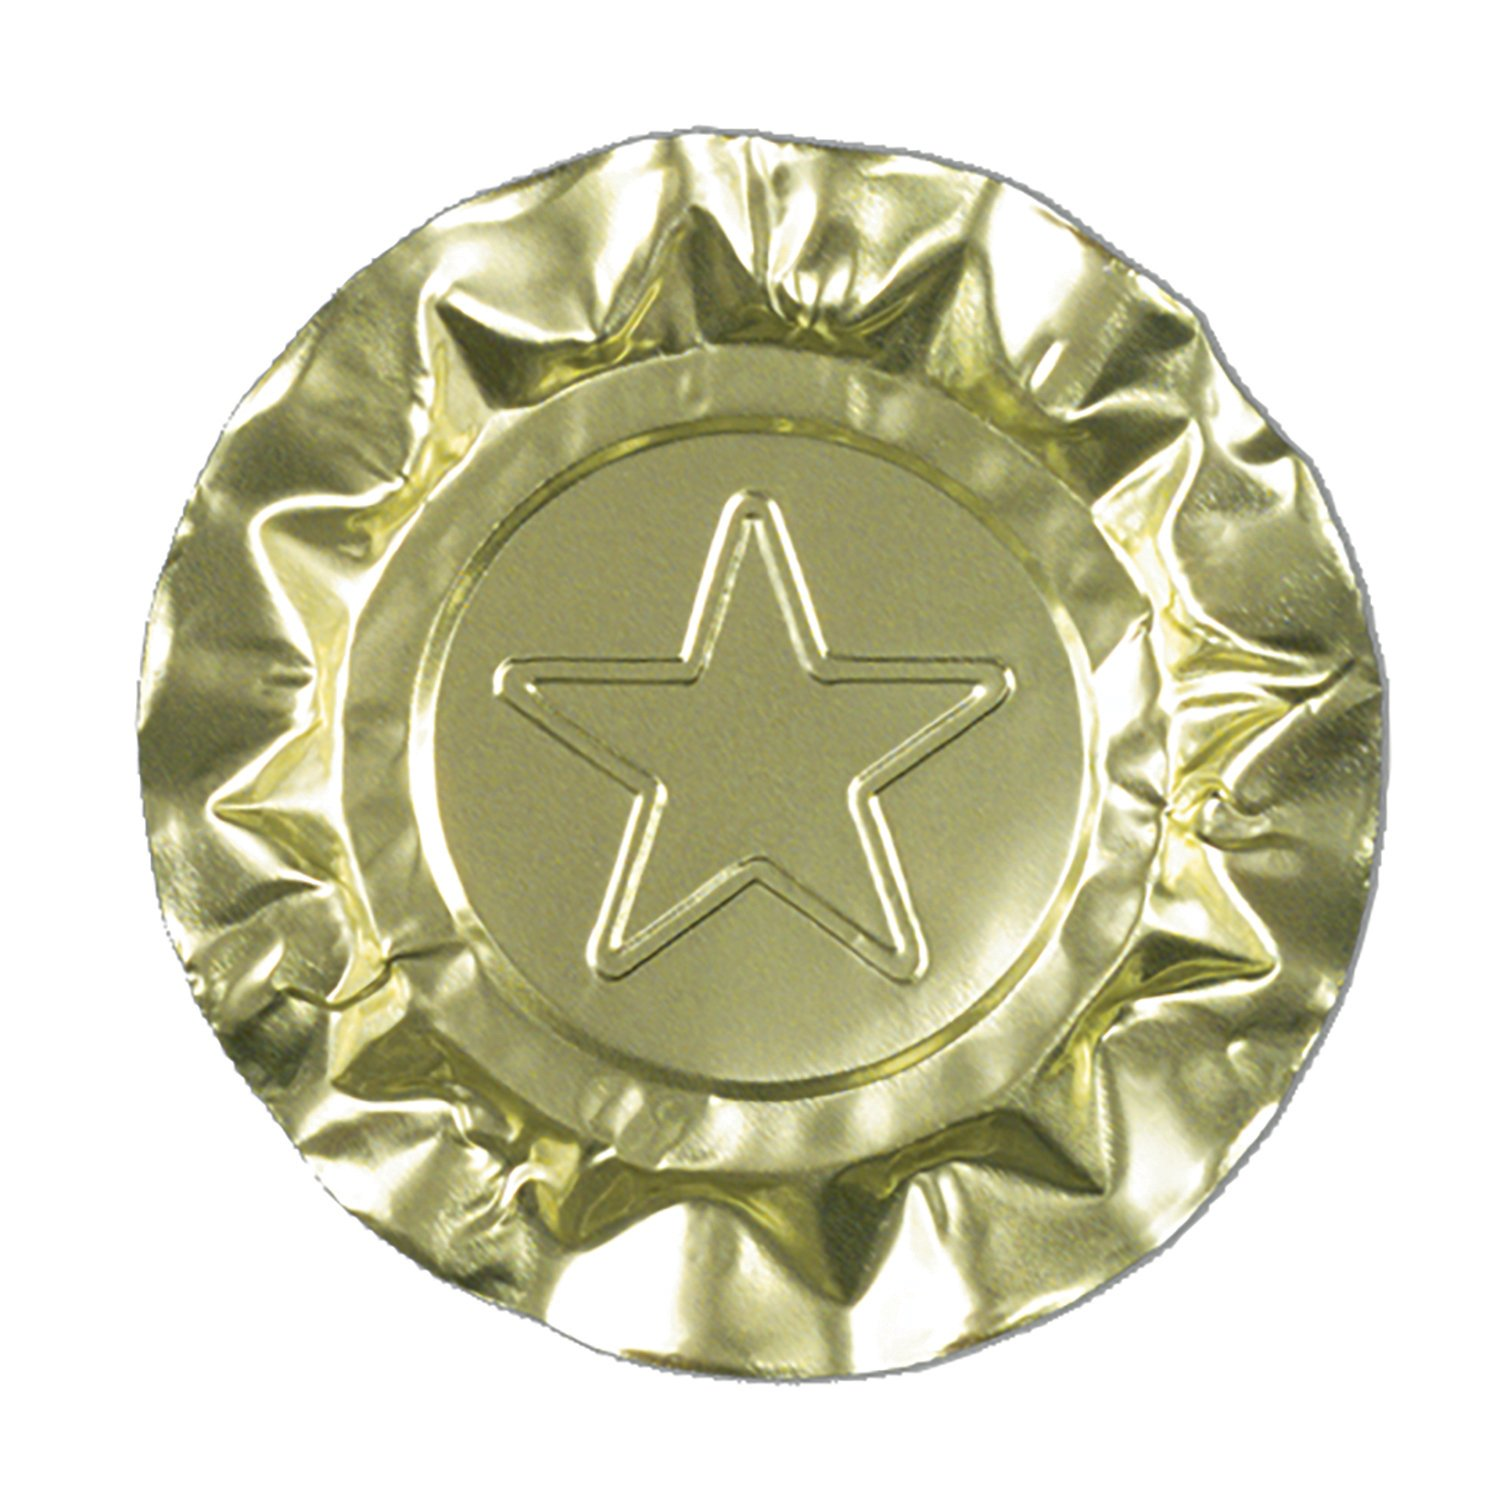 Royal Gold Star Aluminum Ashtrays, Package of 1000 by Royal